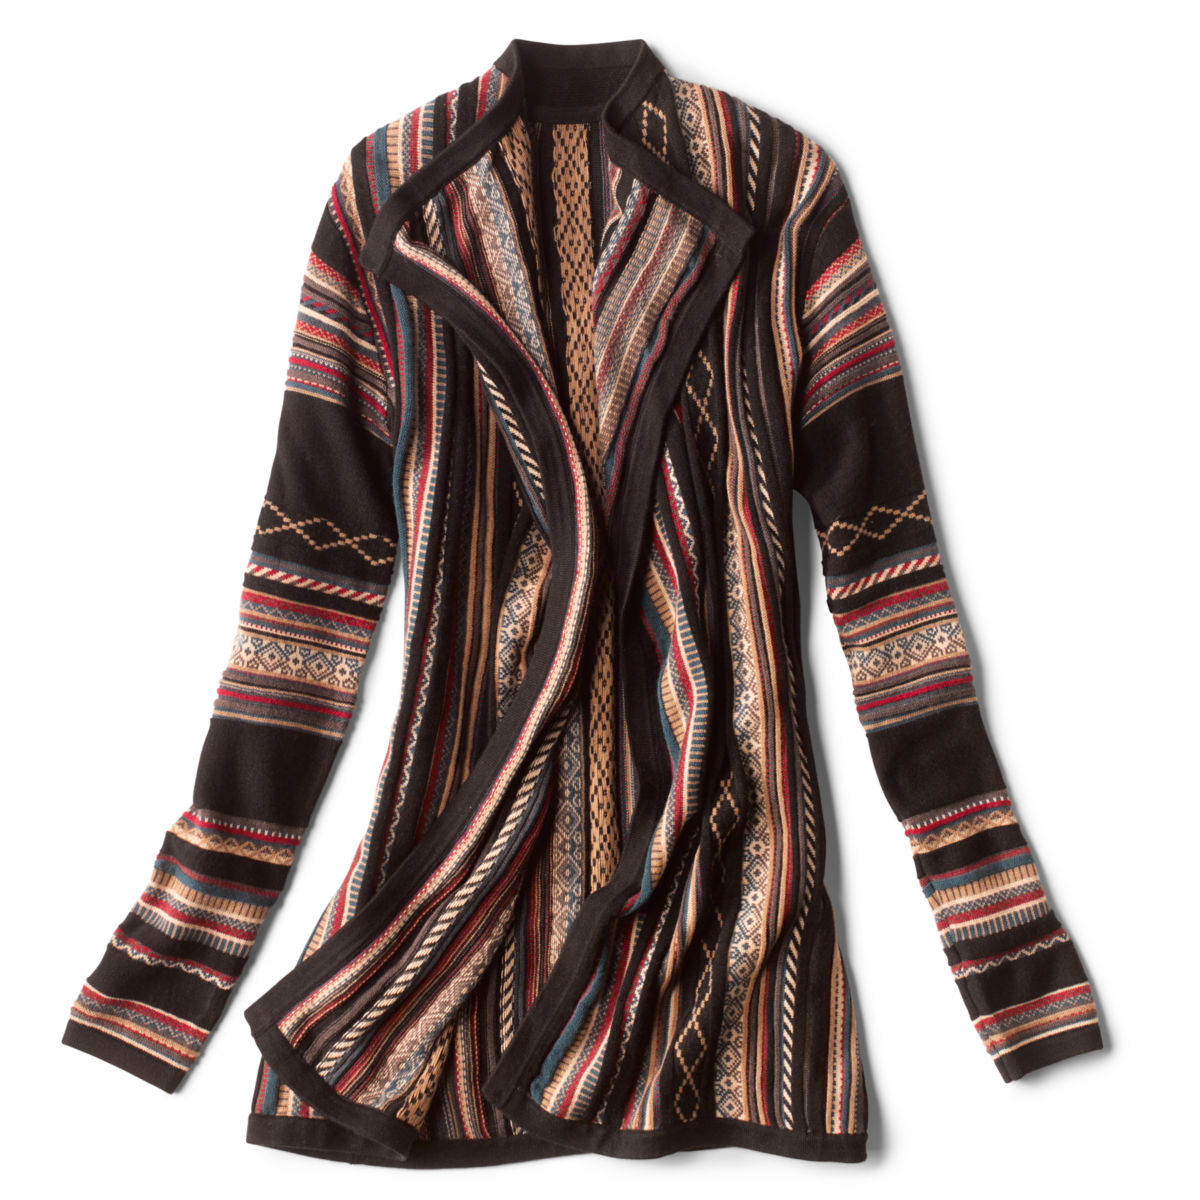 Blanket-Stripe Cardigan Sweater - MULTI STRIPEimage number 0